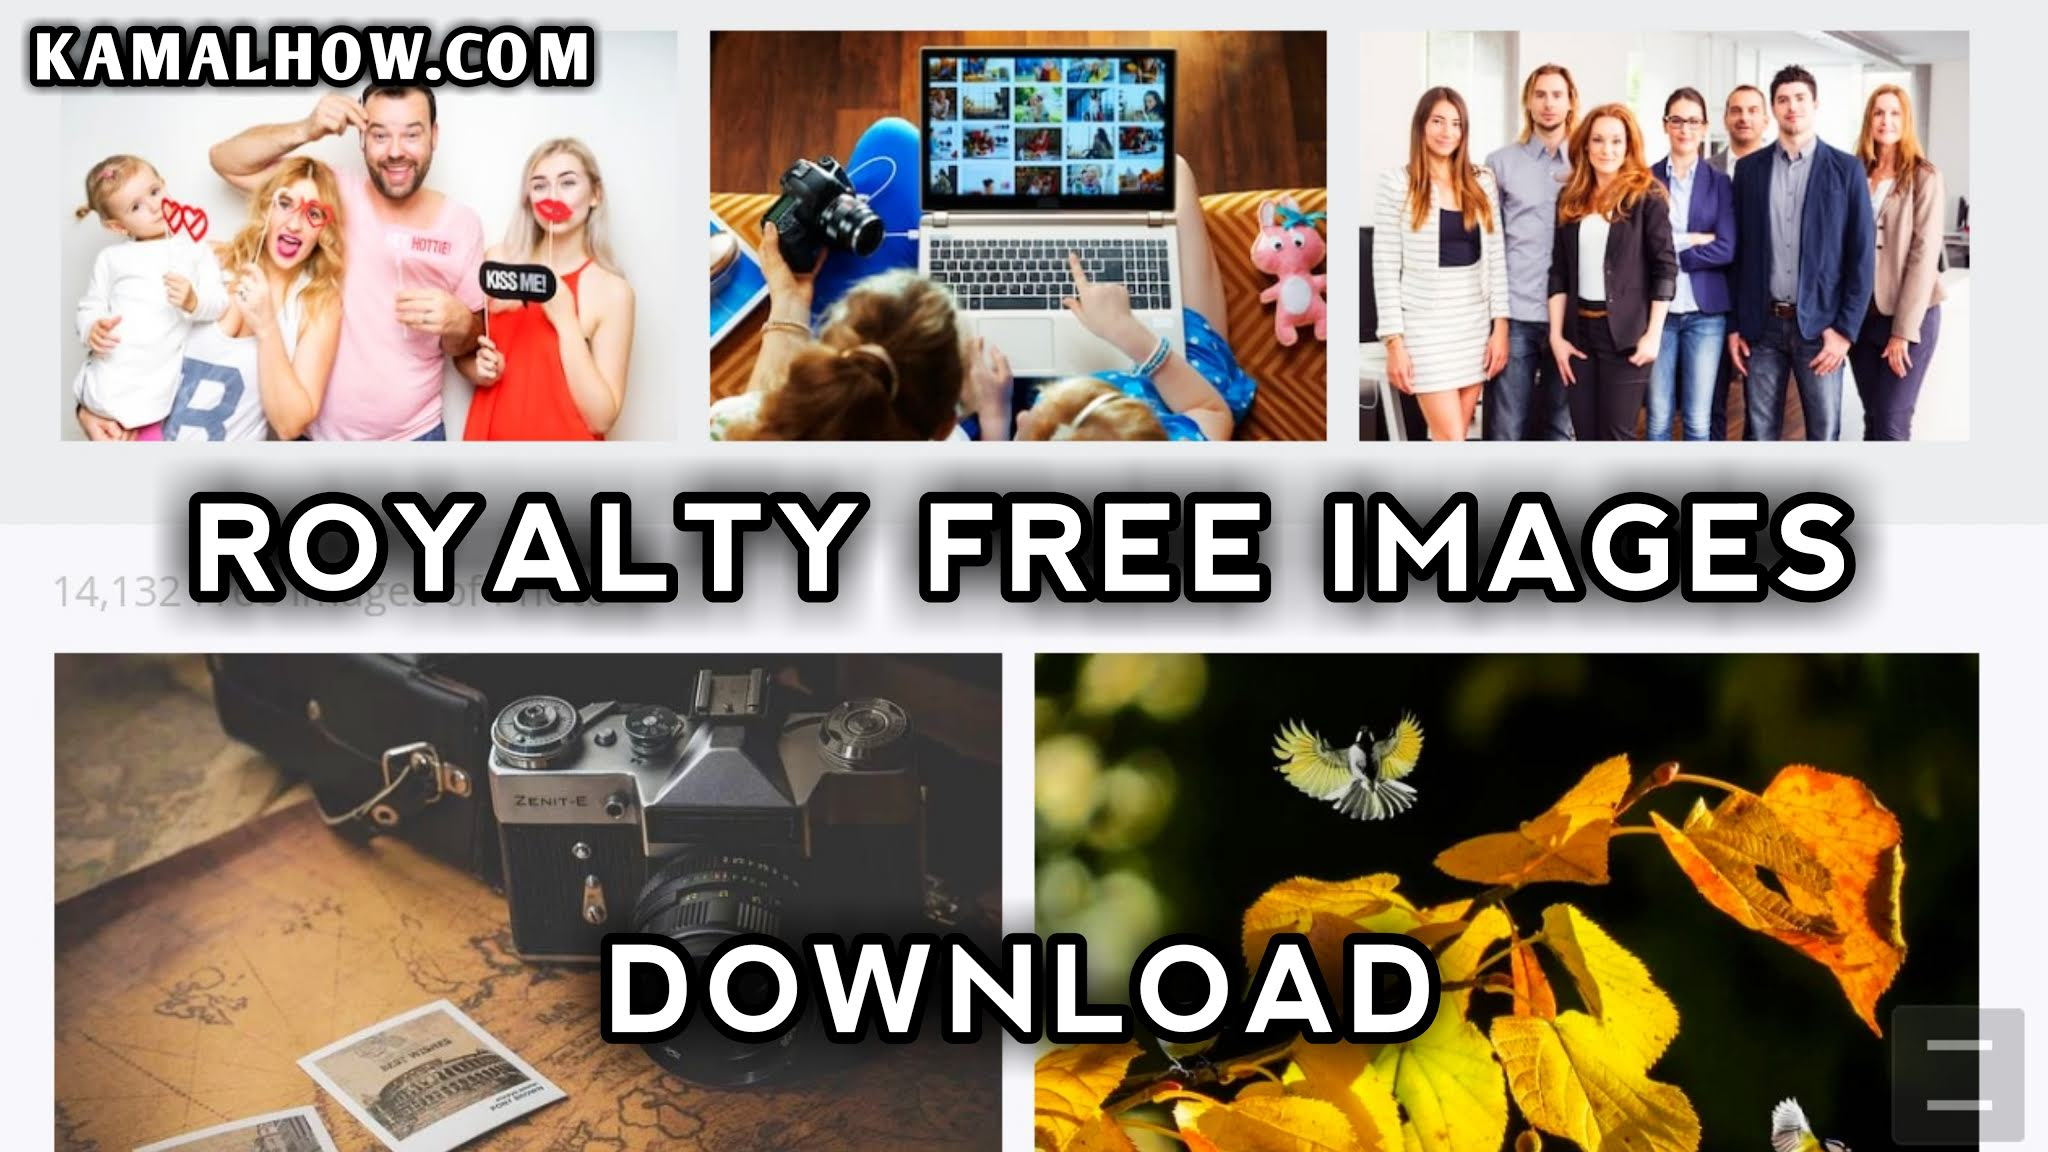 Top-5-Royalty-free-images-website-for-commercial-use-hindi-non-copyright-images-download-free-photo-kamal-how-kamalhow